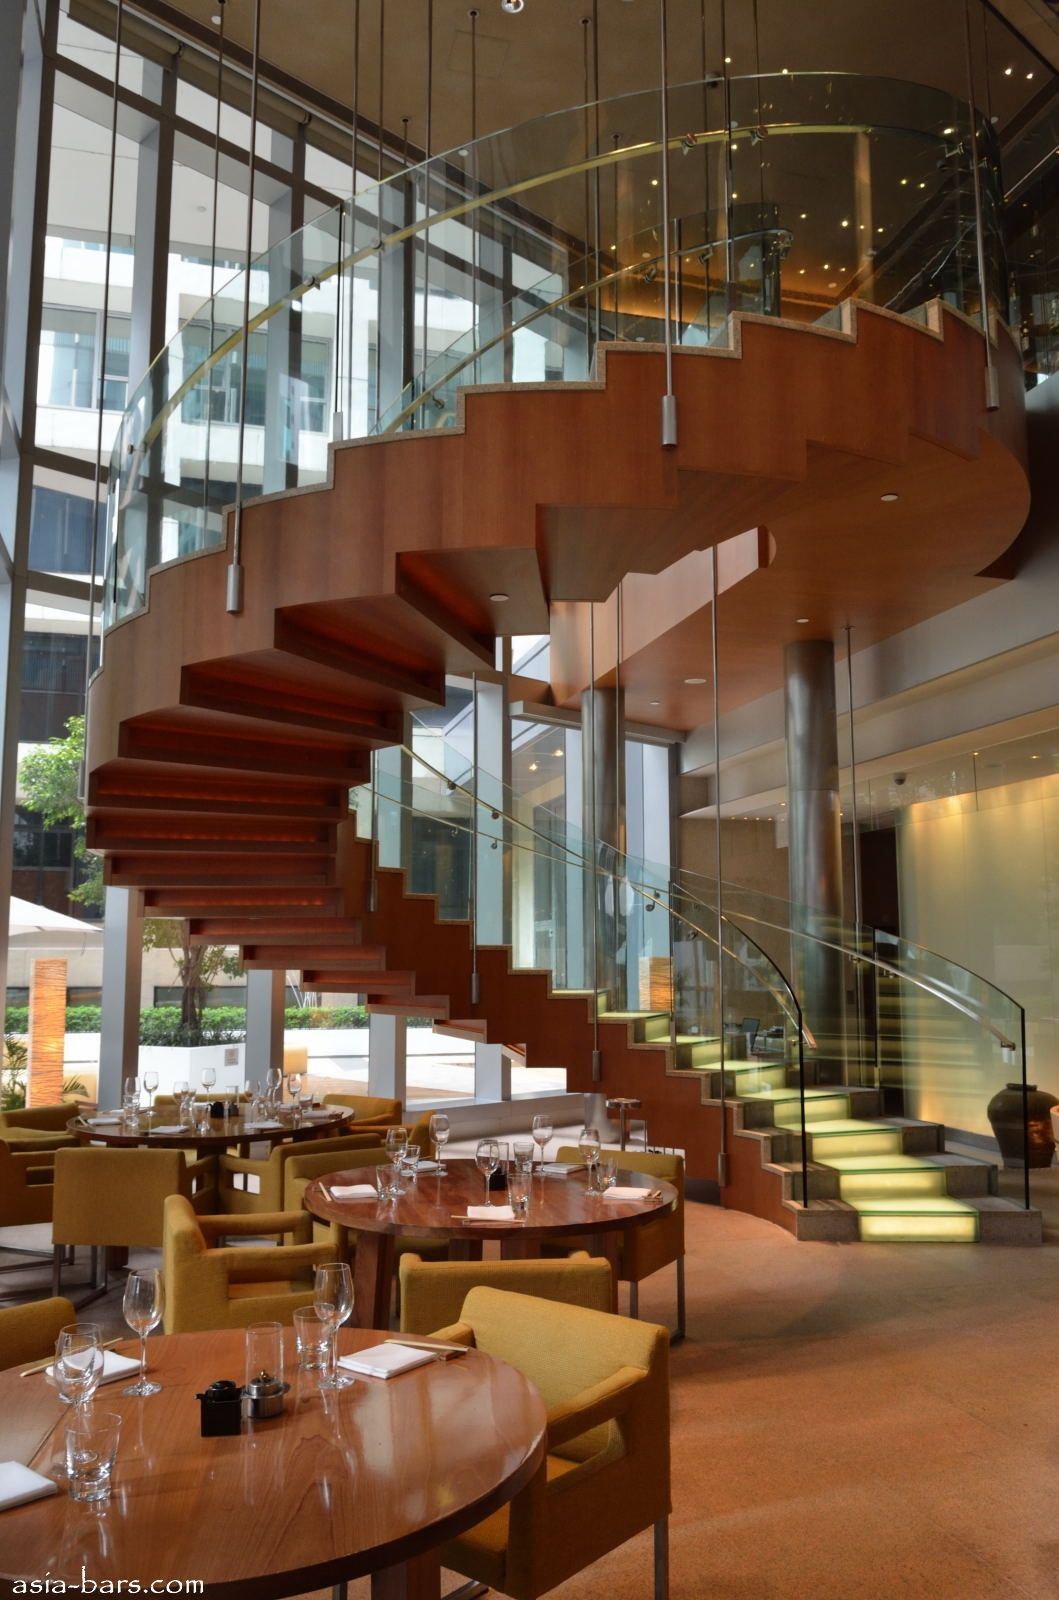 Staircase design archaic spiral staircase dimensions for Round staircase designs interior